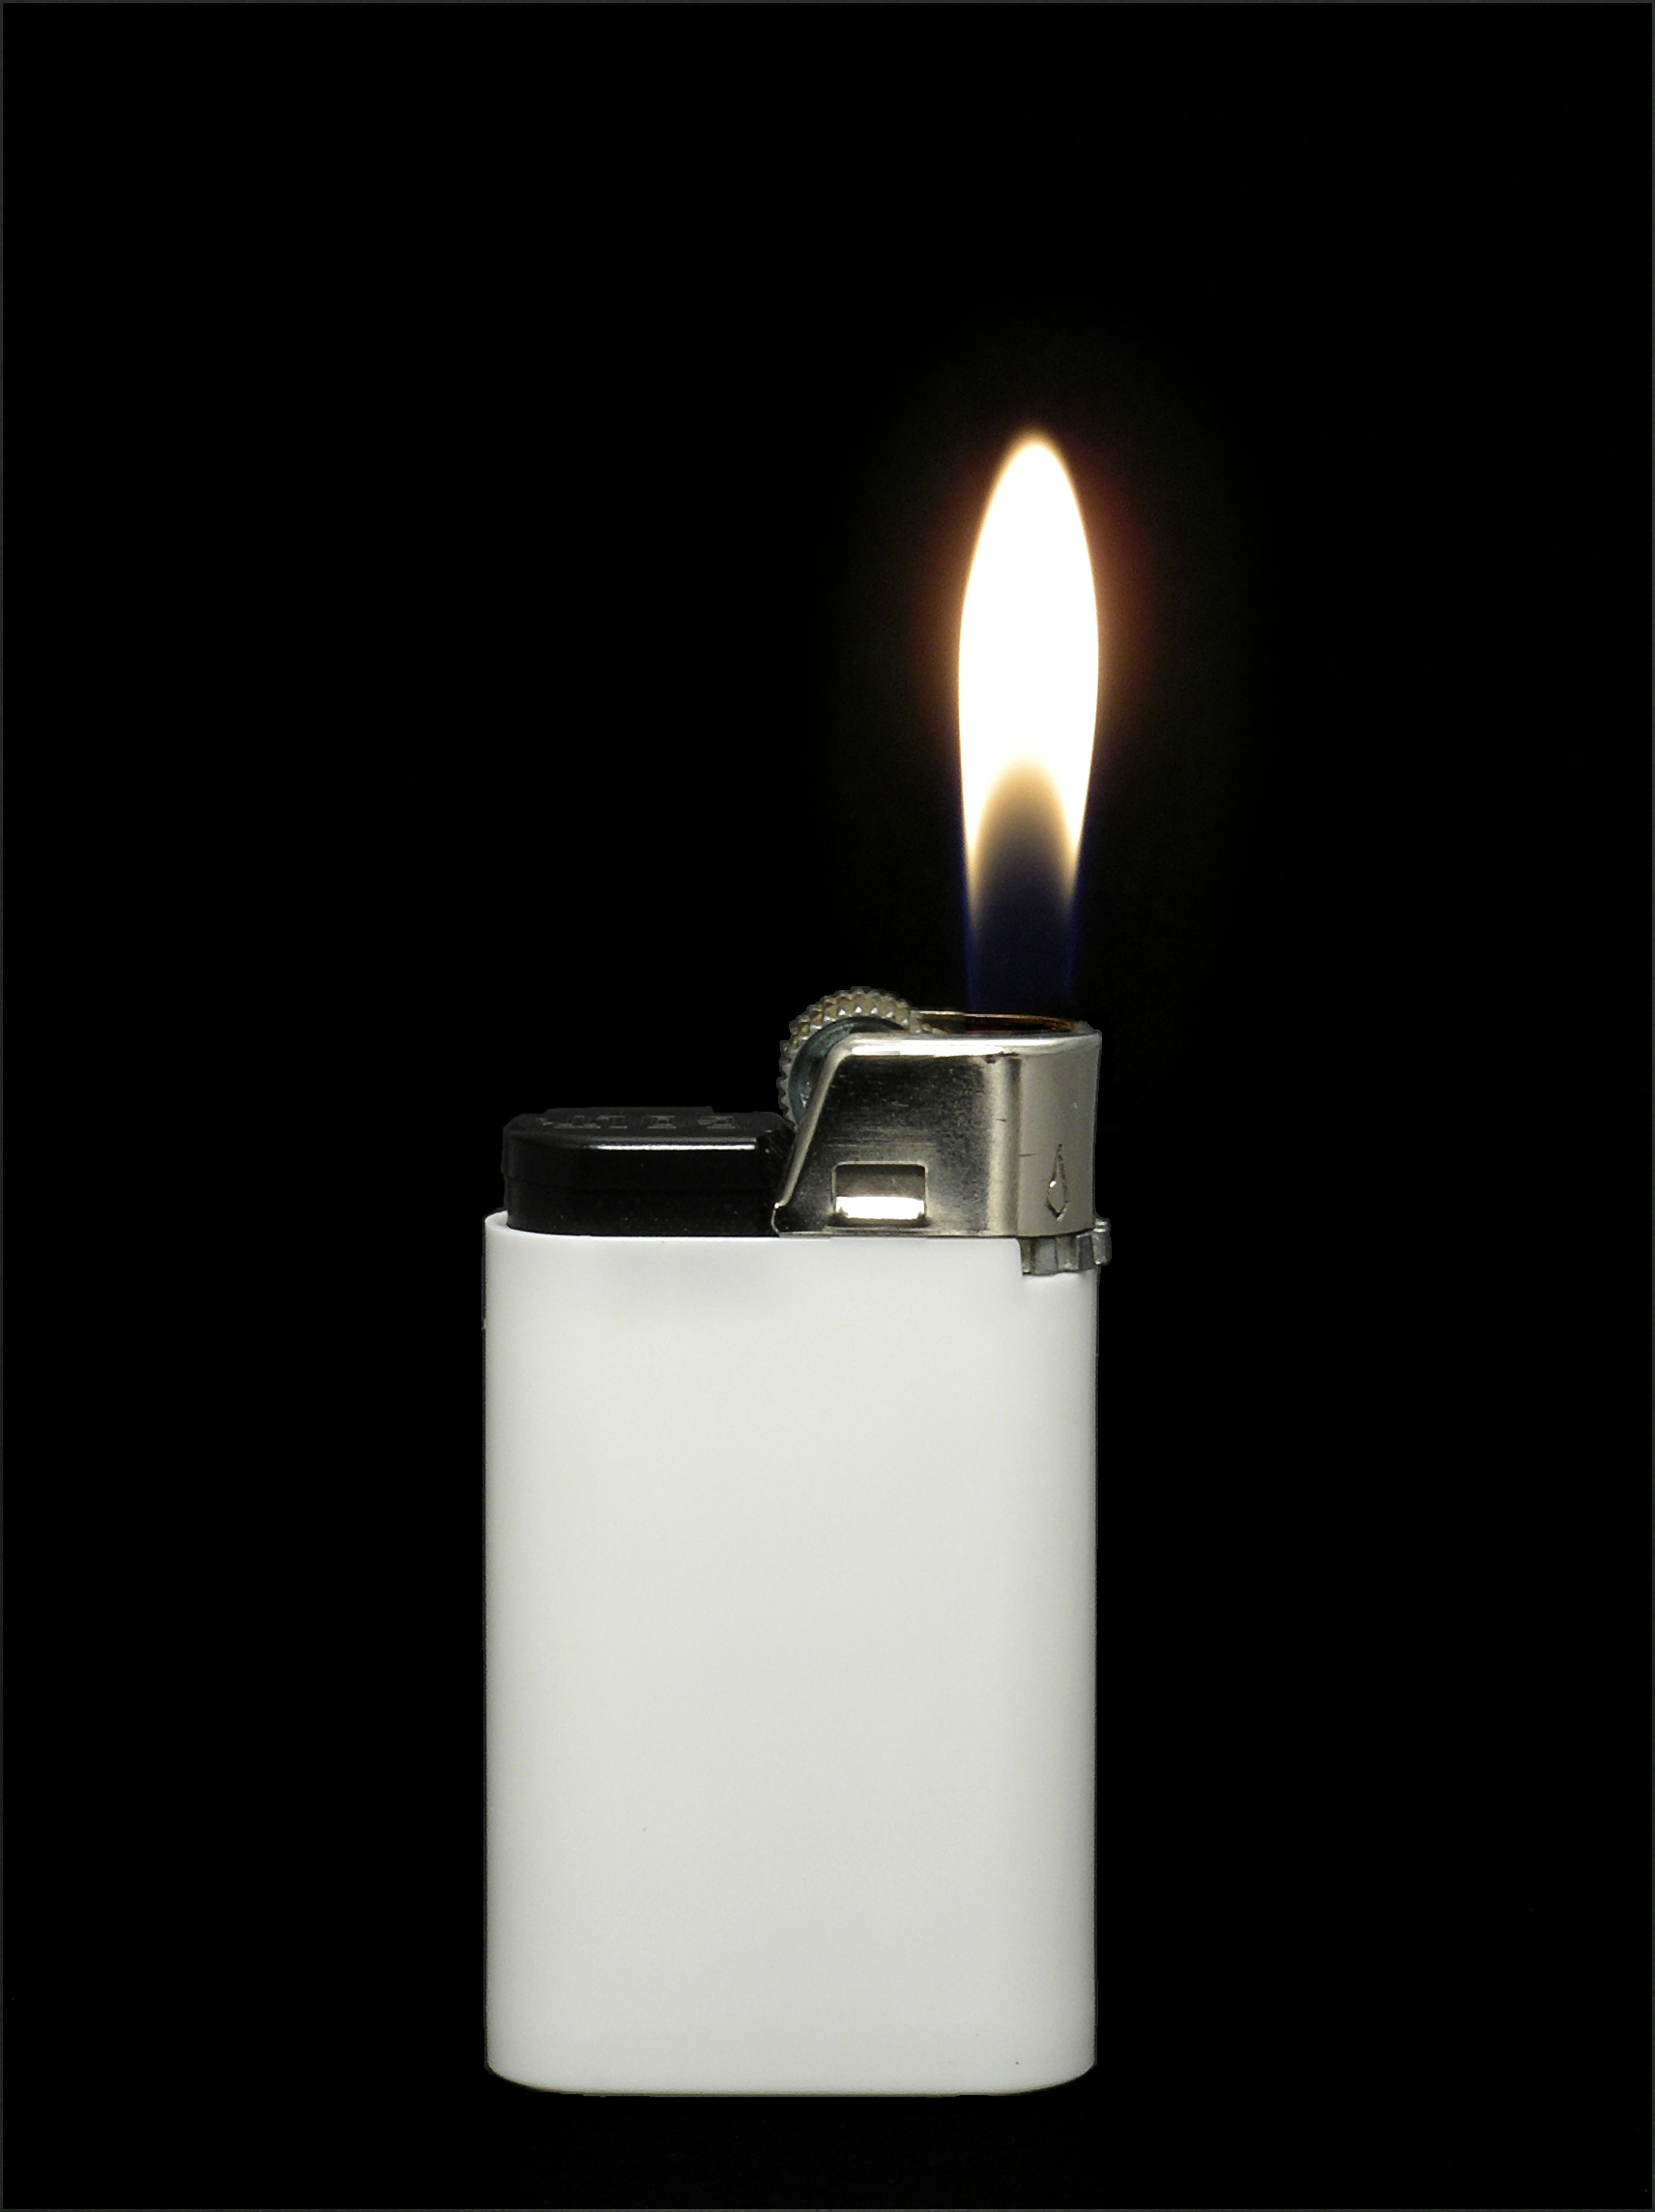 led_matrix_White_lighter_with_flame.jpg